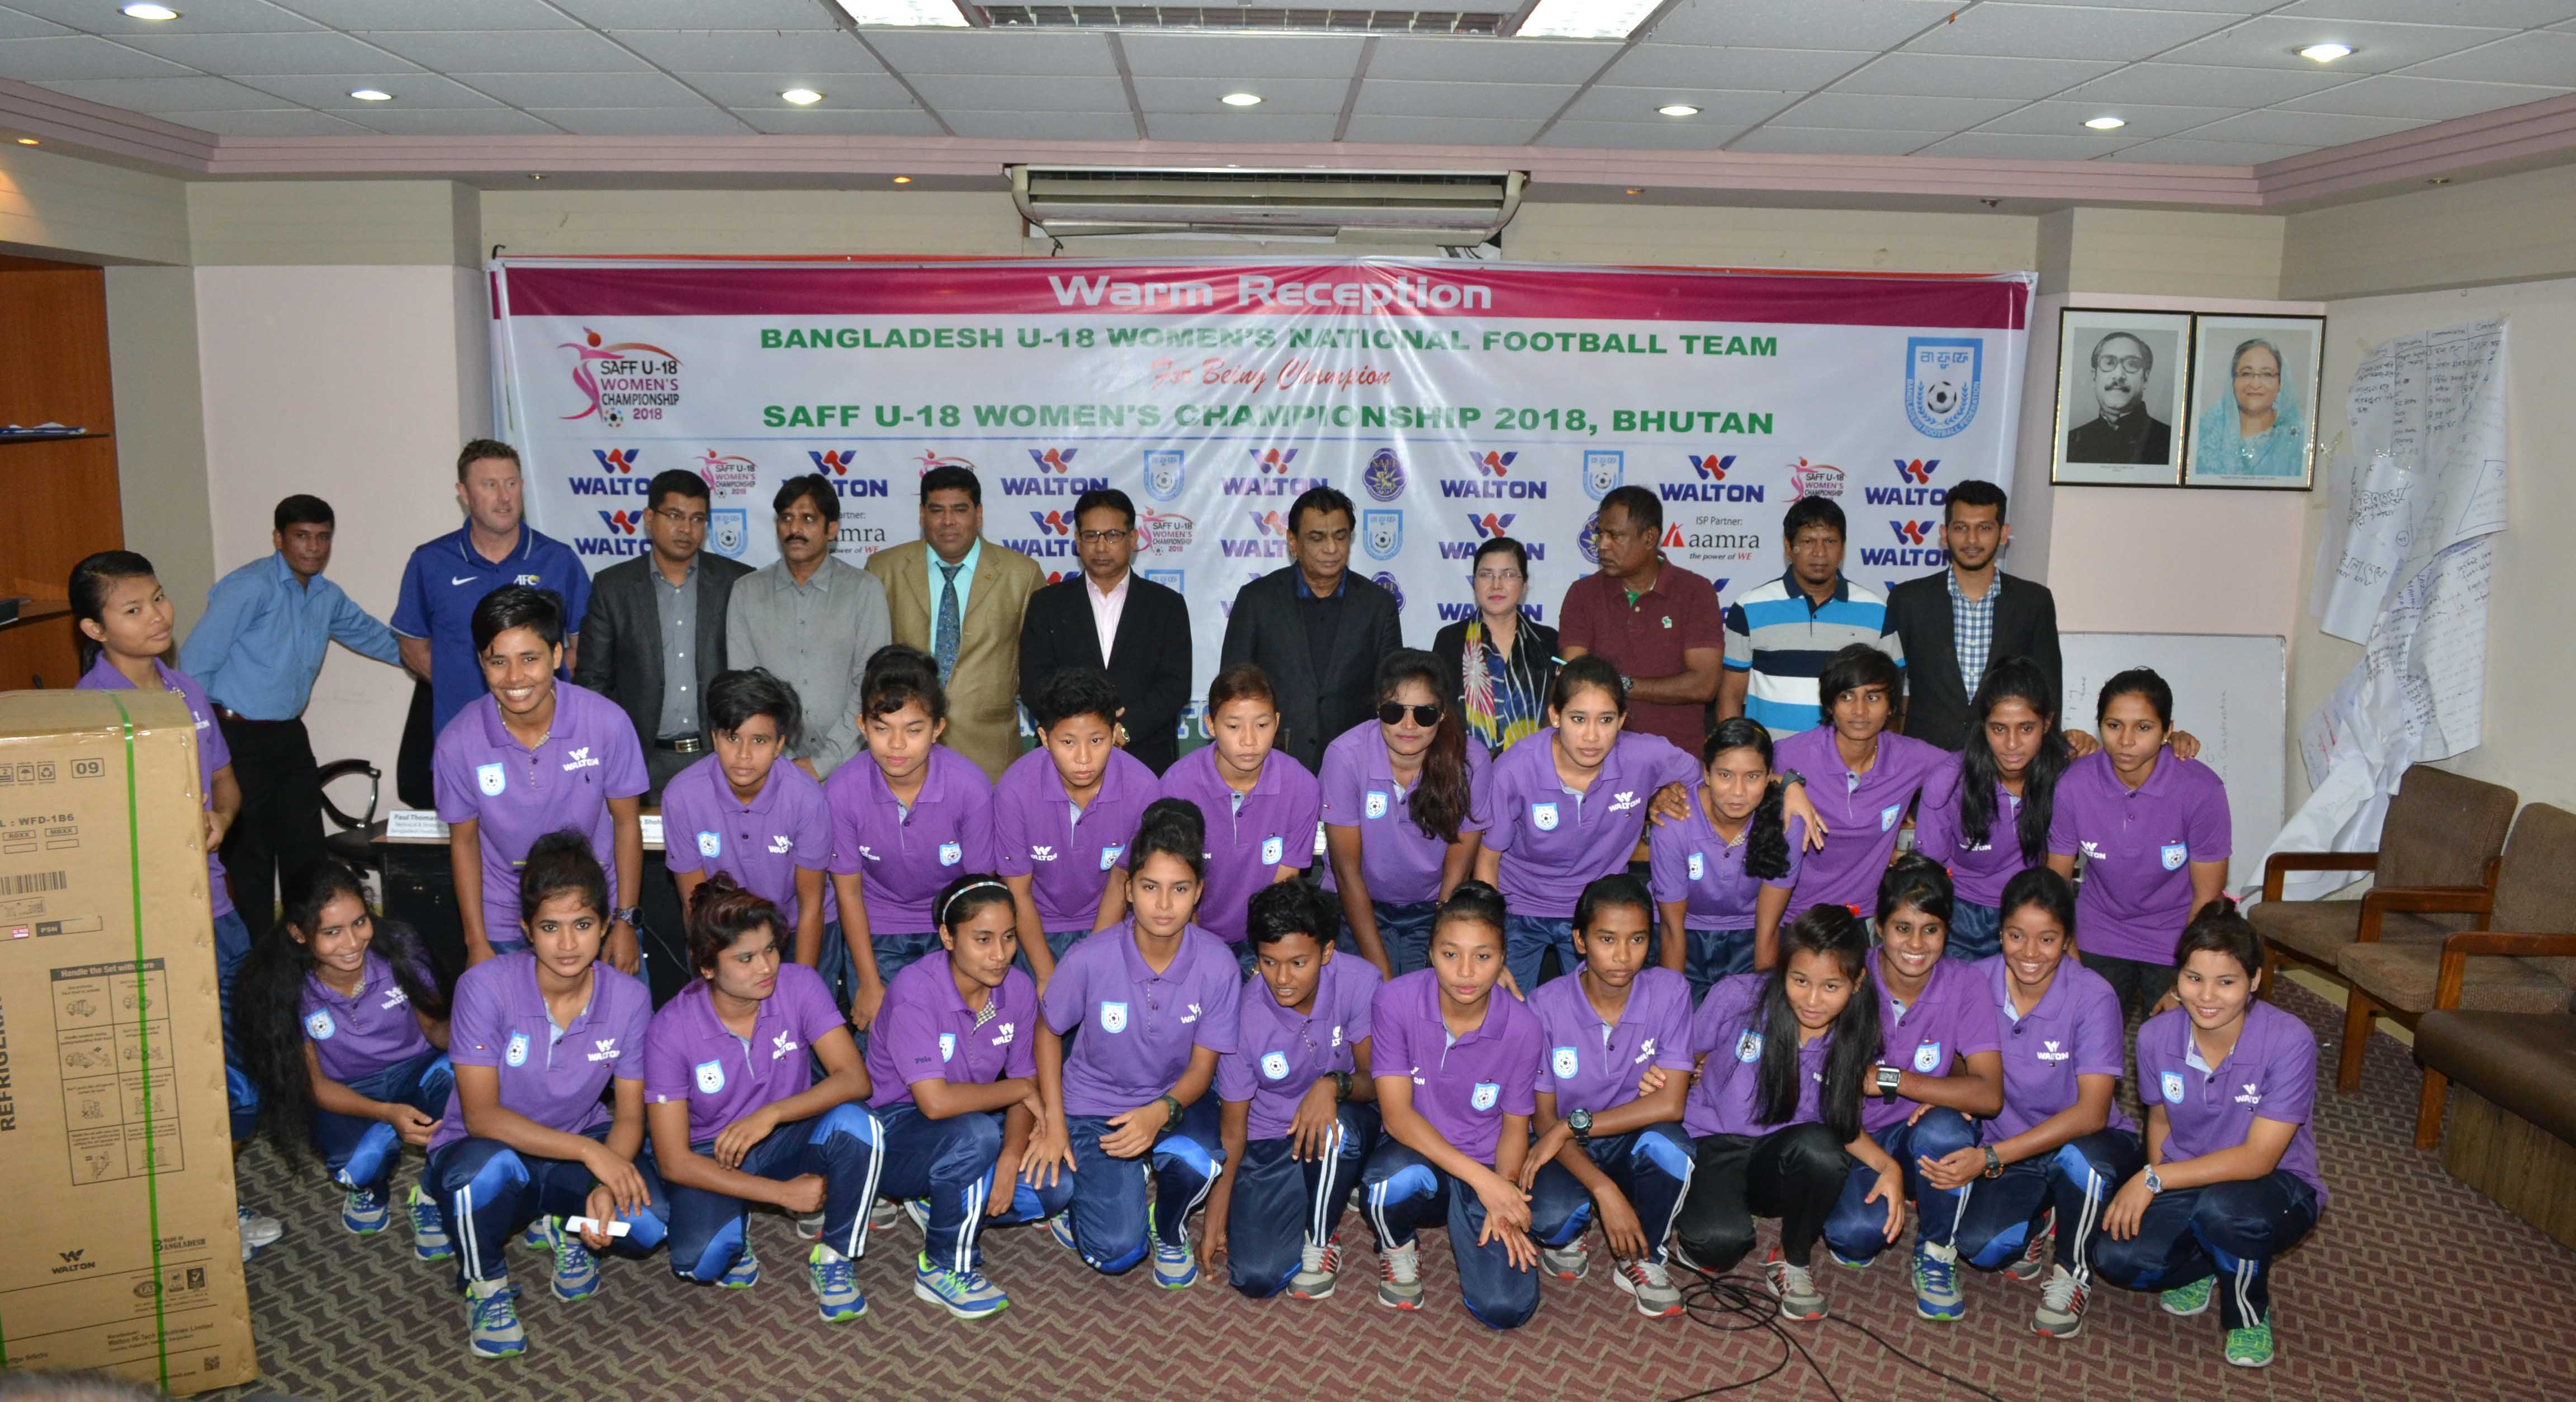 Members of Bangladesh Under-18 National Women's Football team with the guests and officials of Bangladesh Football Federation (BFF) pose for a photo session at the BFF House on Sunday. Walton Group accorded a reception to Bangladesh Under-18 National Women's Football team, which emerged as the champions of the SAFF Under-18 Championship in Bhutan recently.